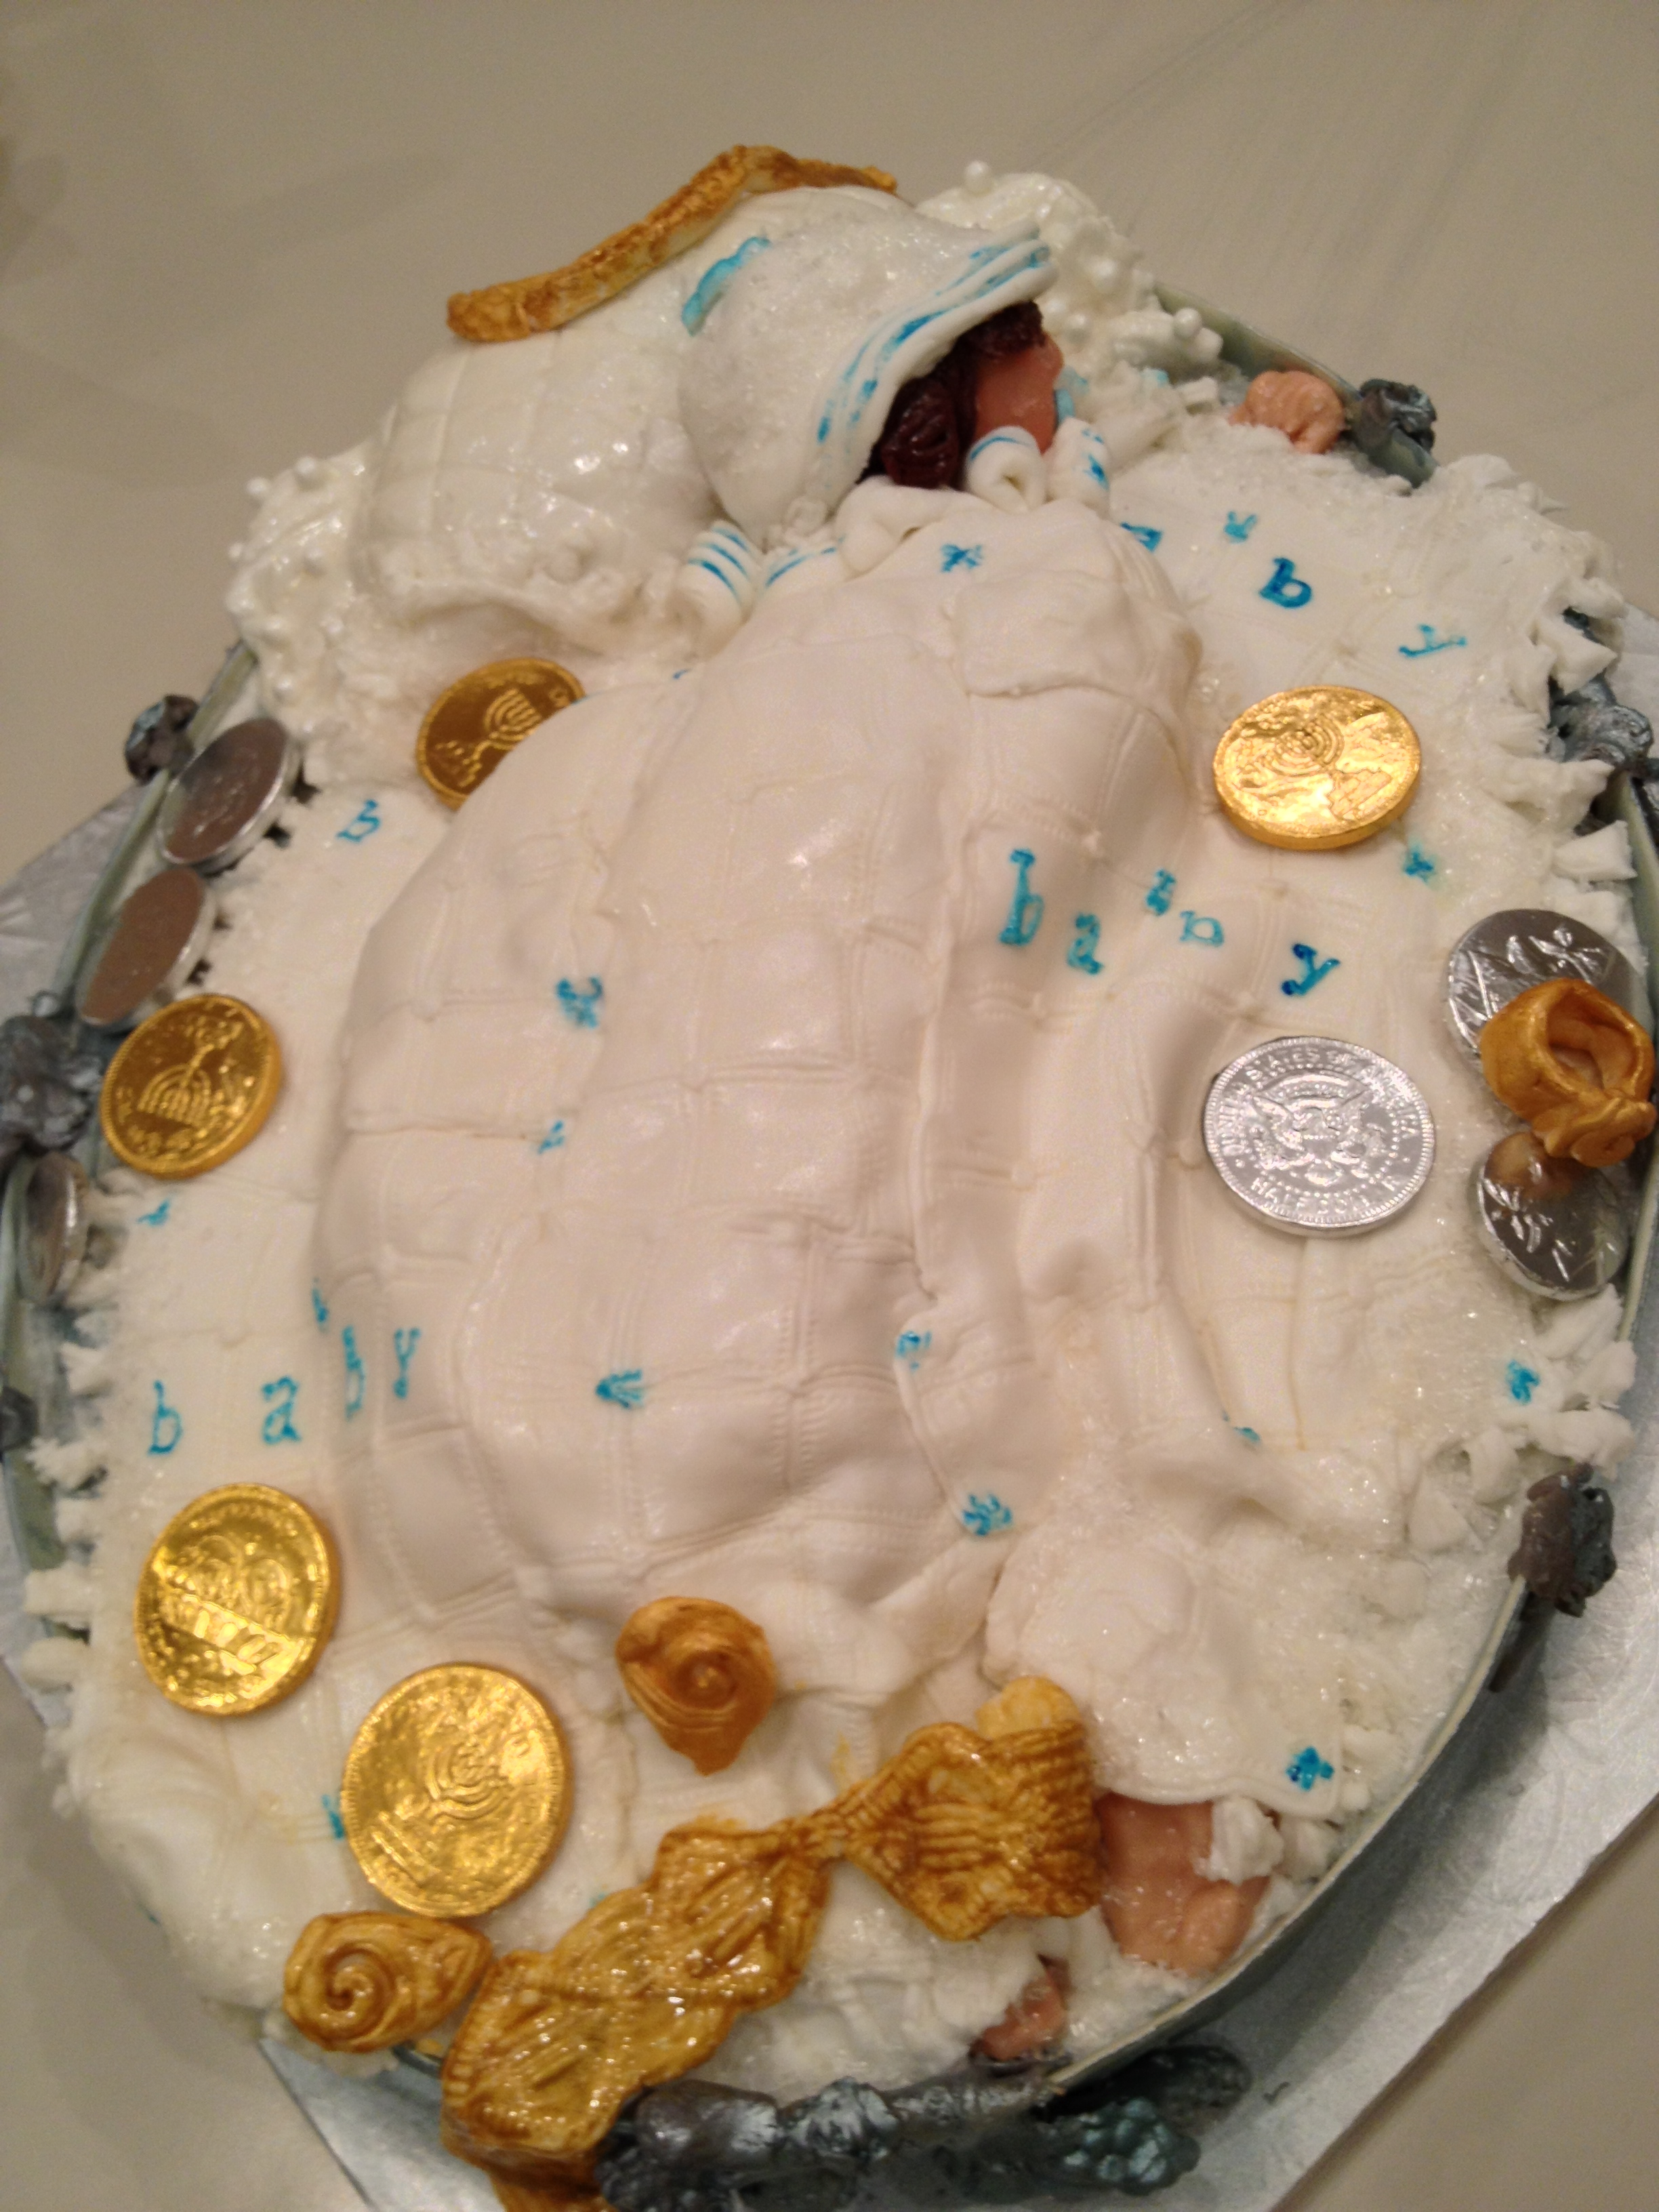 These Photos Are Of A Celebration Cake For A Jewish ...